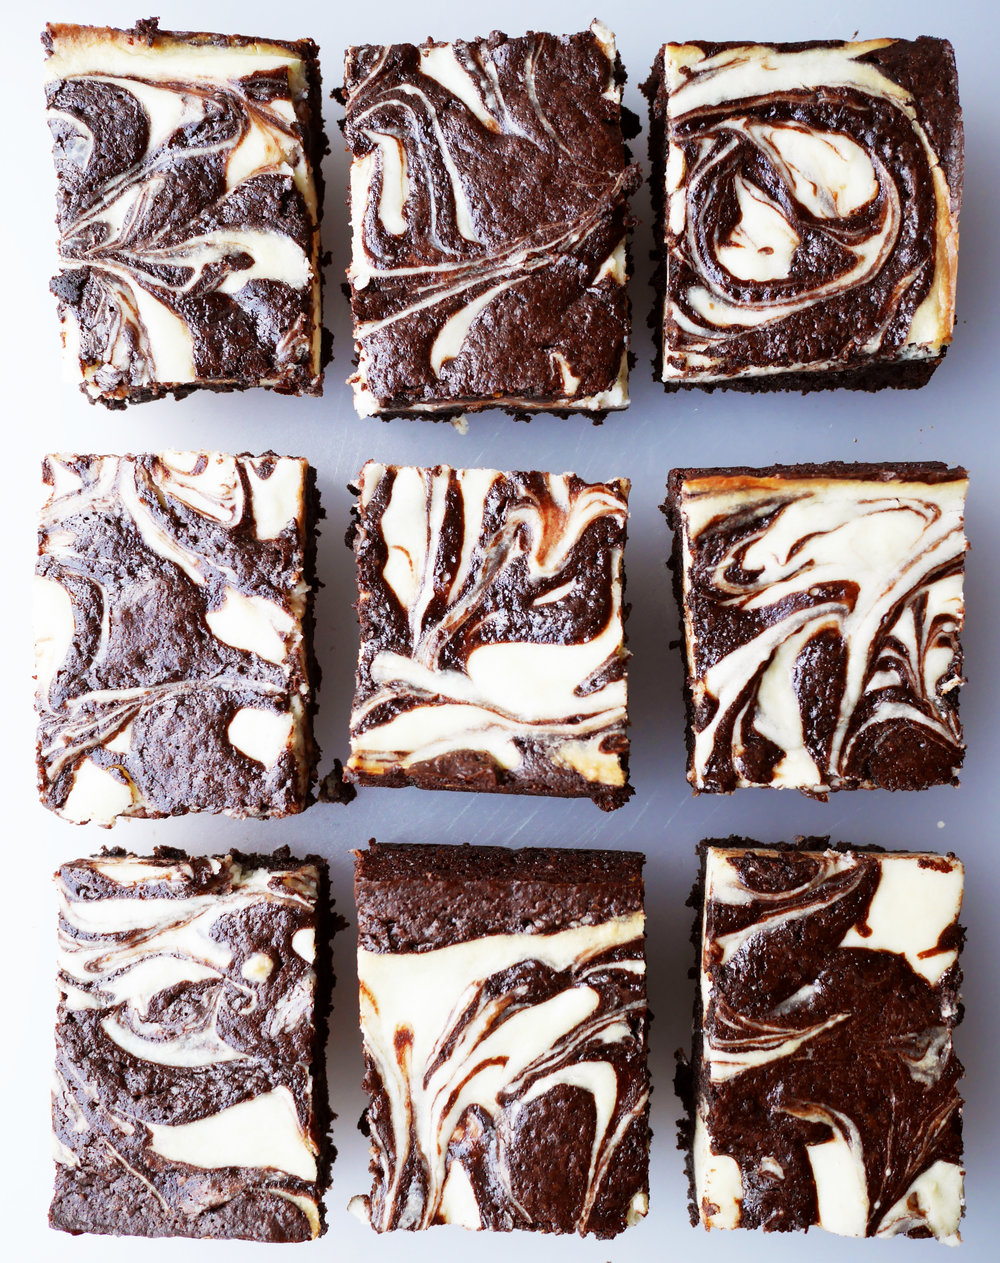 grid-of-brownies.jpg